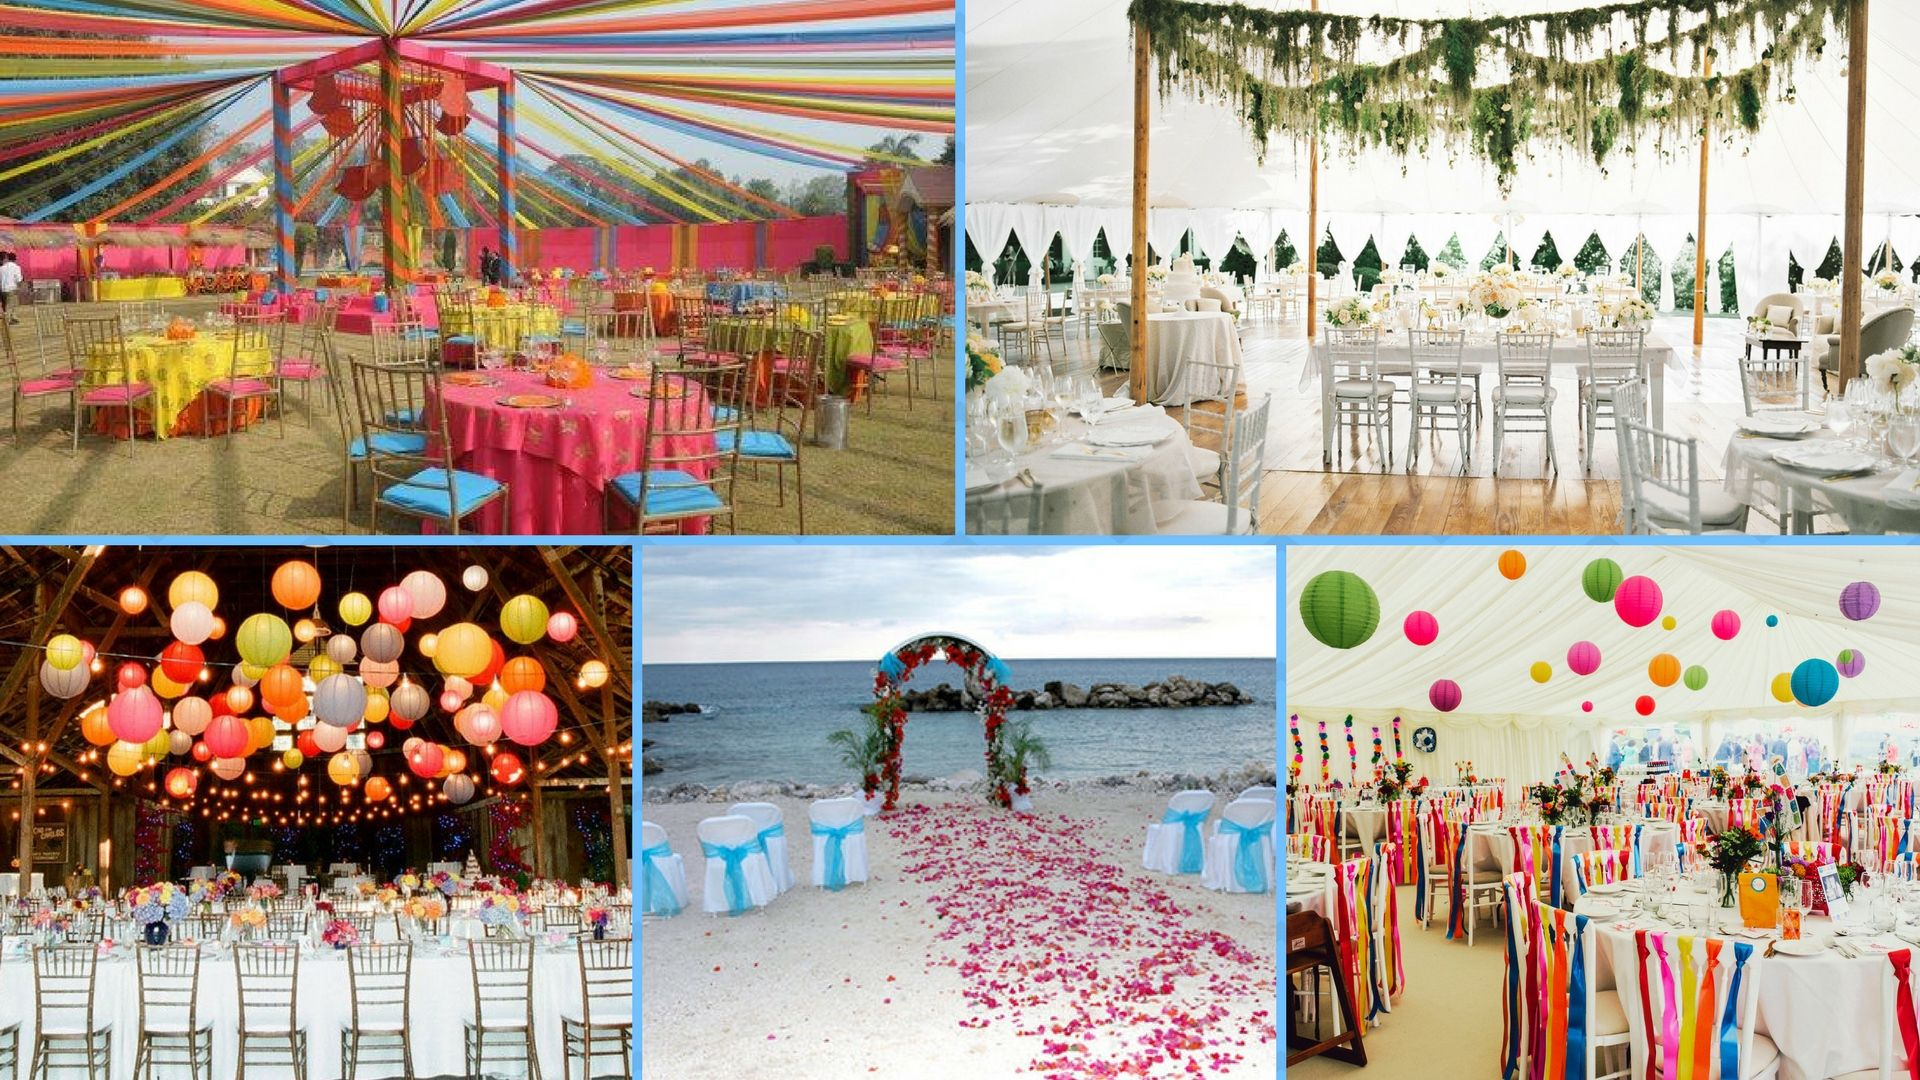 We Organize And Decorate The Entire Happy Moments Like Wedding Events And Corporate Events And More As One O Wedding Decorations Entrance Decor Wedding Events